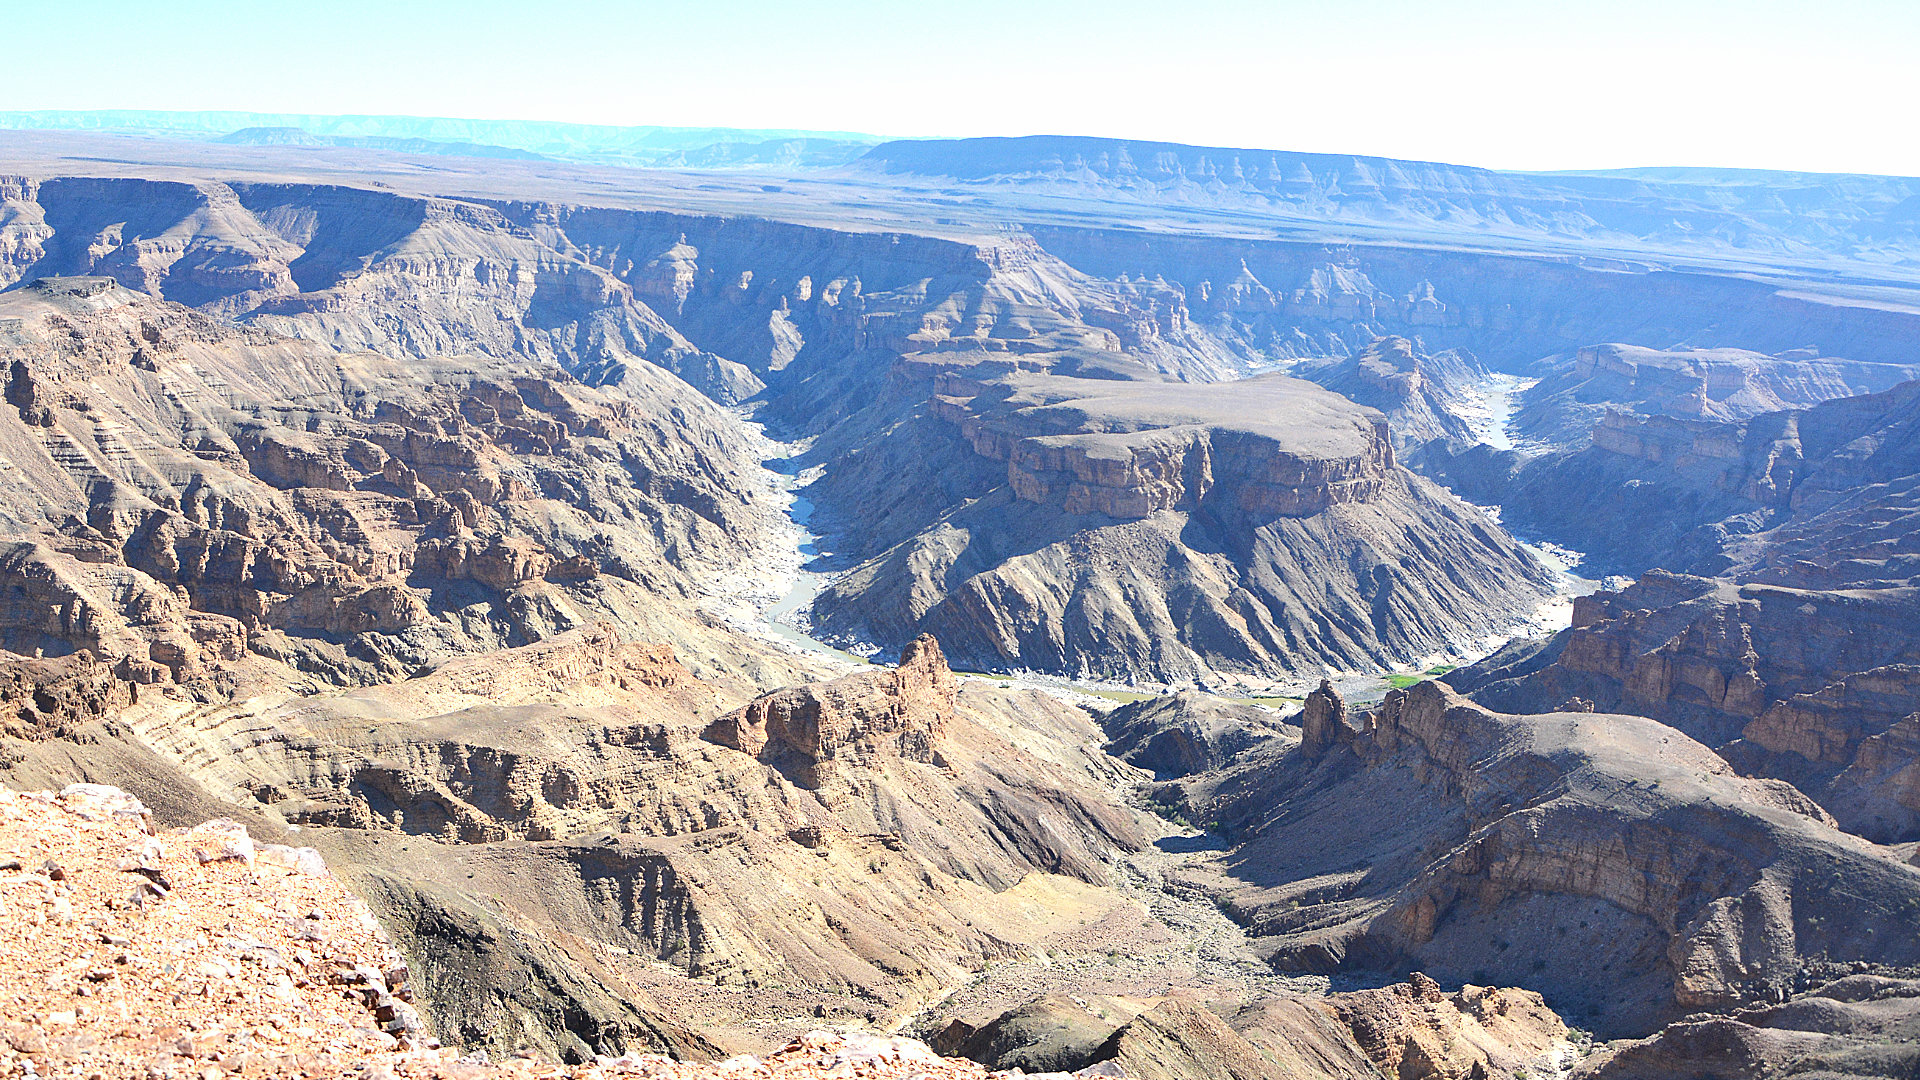 Fishriver Canyon in Namibia (Foto: Sabina Schneider)